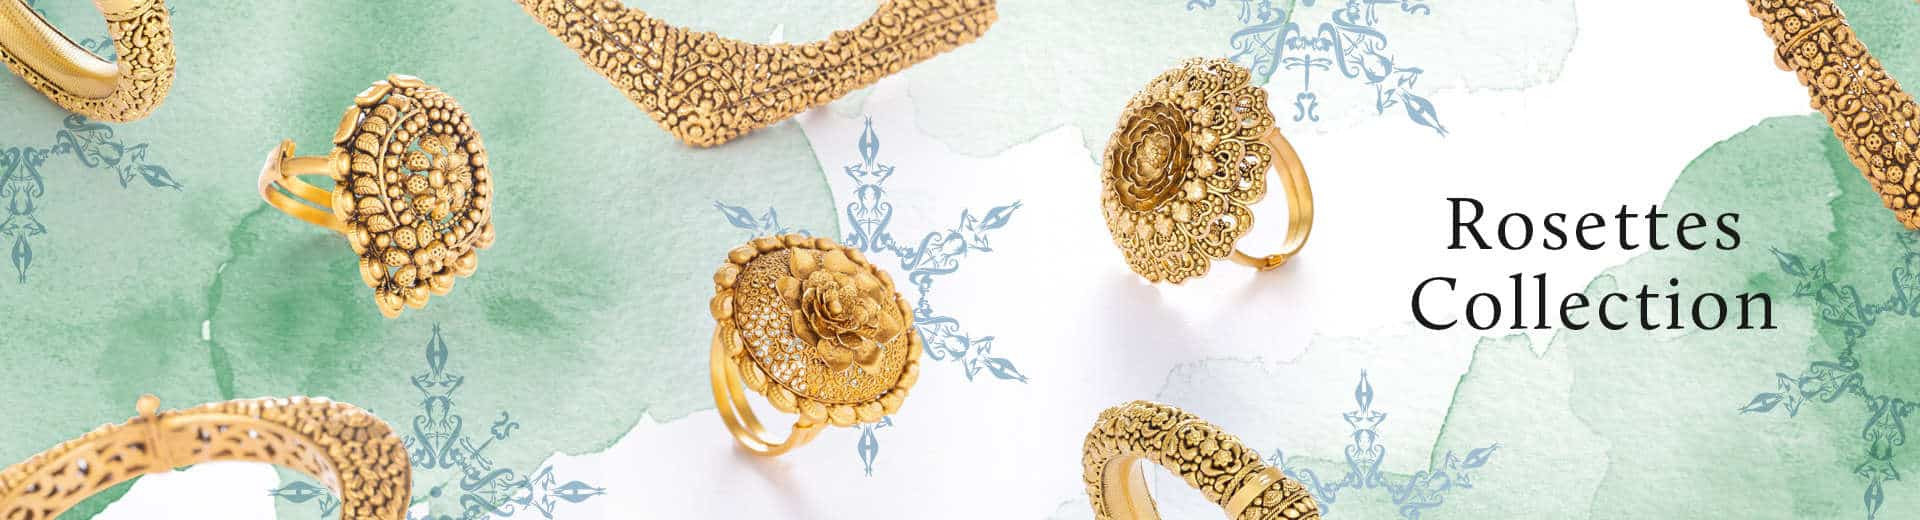 Rosettes Collection Banner